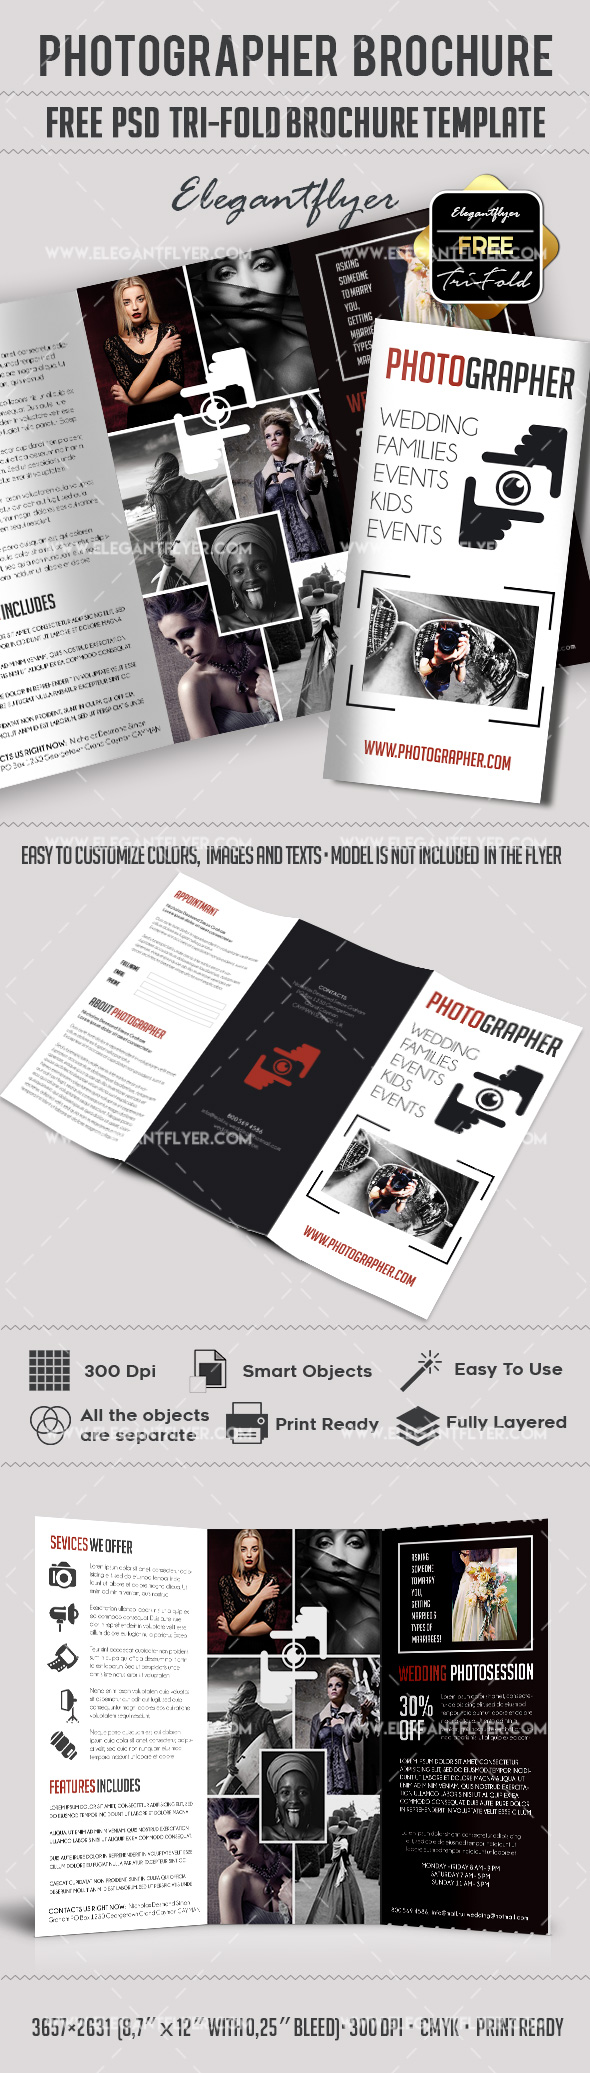 Free Tri-Fold Brochure for Photographer